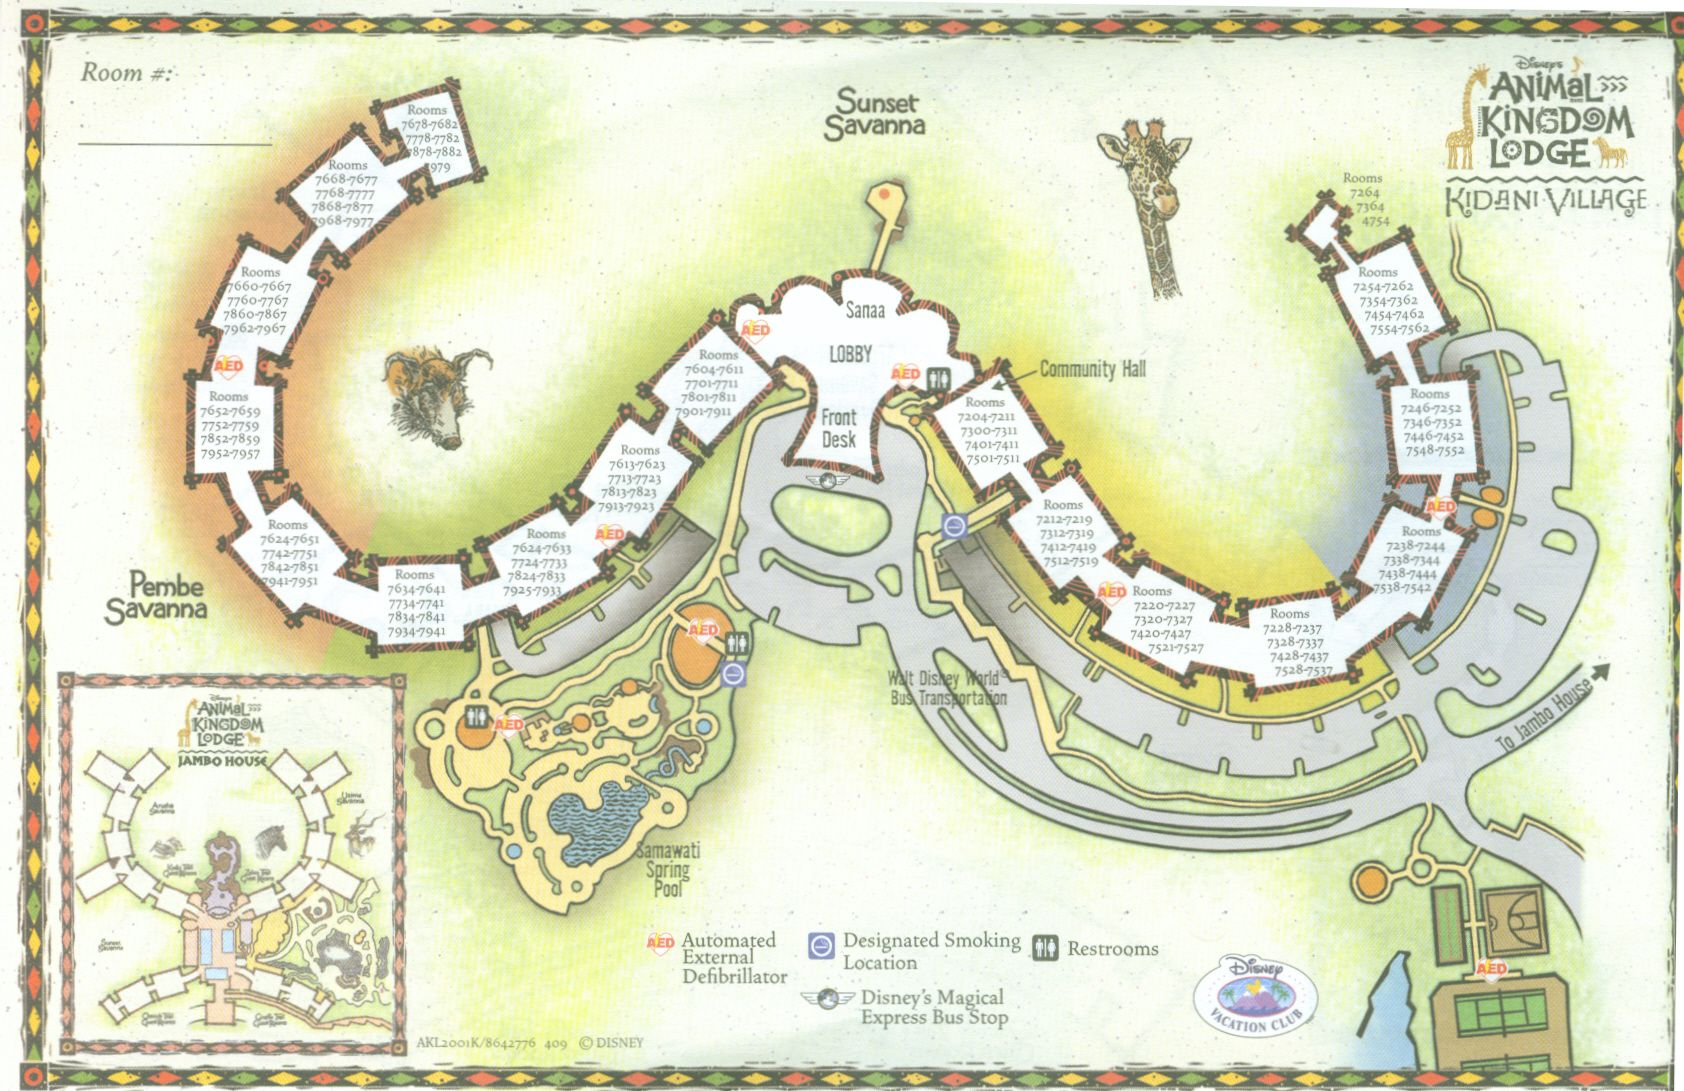 Kidani Village map | Disney Planning | Disney animal kingdom lodge on dolphin map, garden spot village map, new orleans square map, expedition everest map, contemporary map, main street usa map, disney magic map, sanaa map, pirates of the caribbean map, kearney village map, wilderness lodge map, disney dream map, pop century map, hong village map, art of animation map, shades of green map, disney vacation club map, world showcase map, port orleans french quarter map, all star movies map,